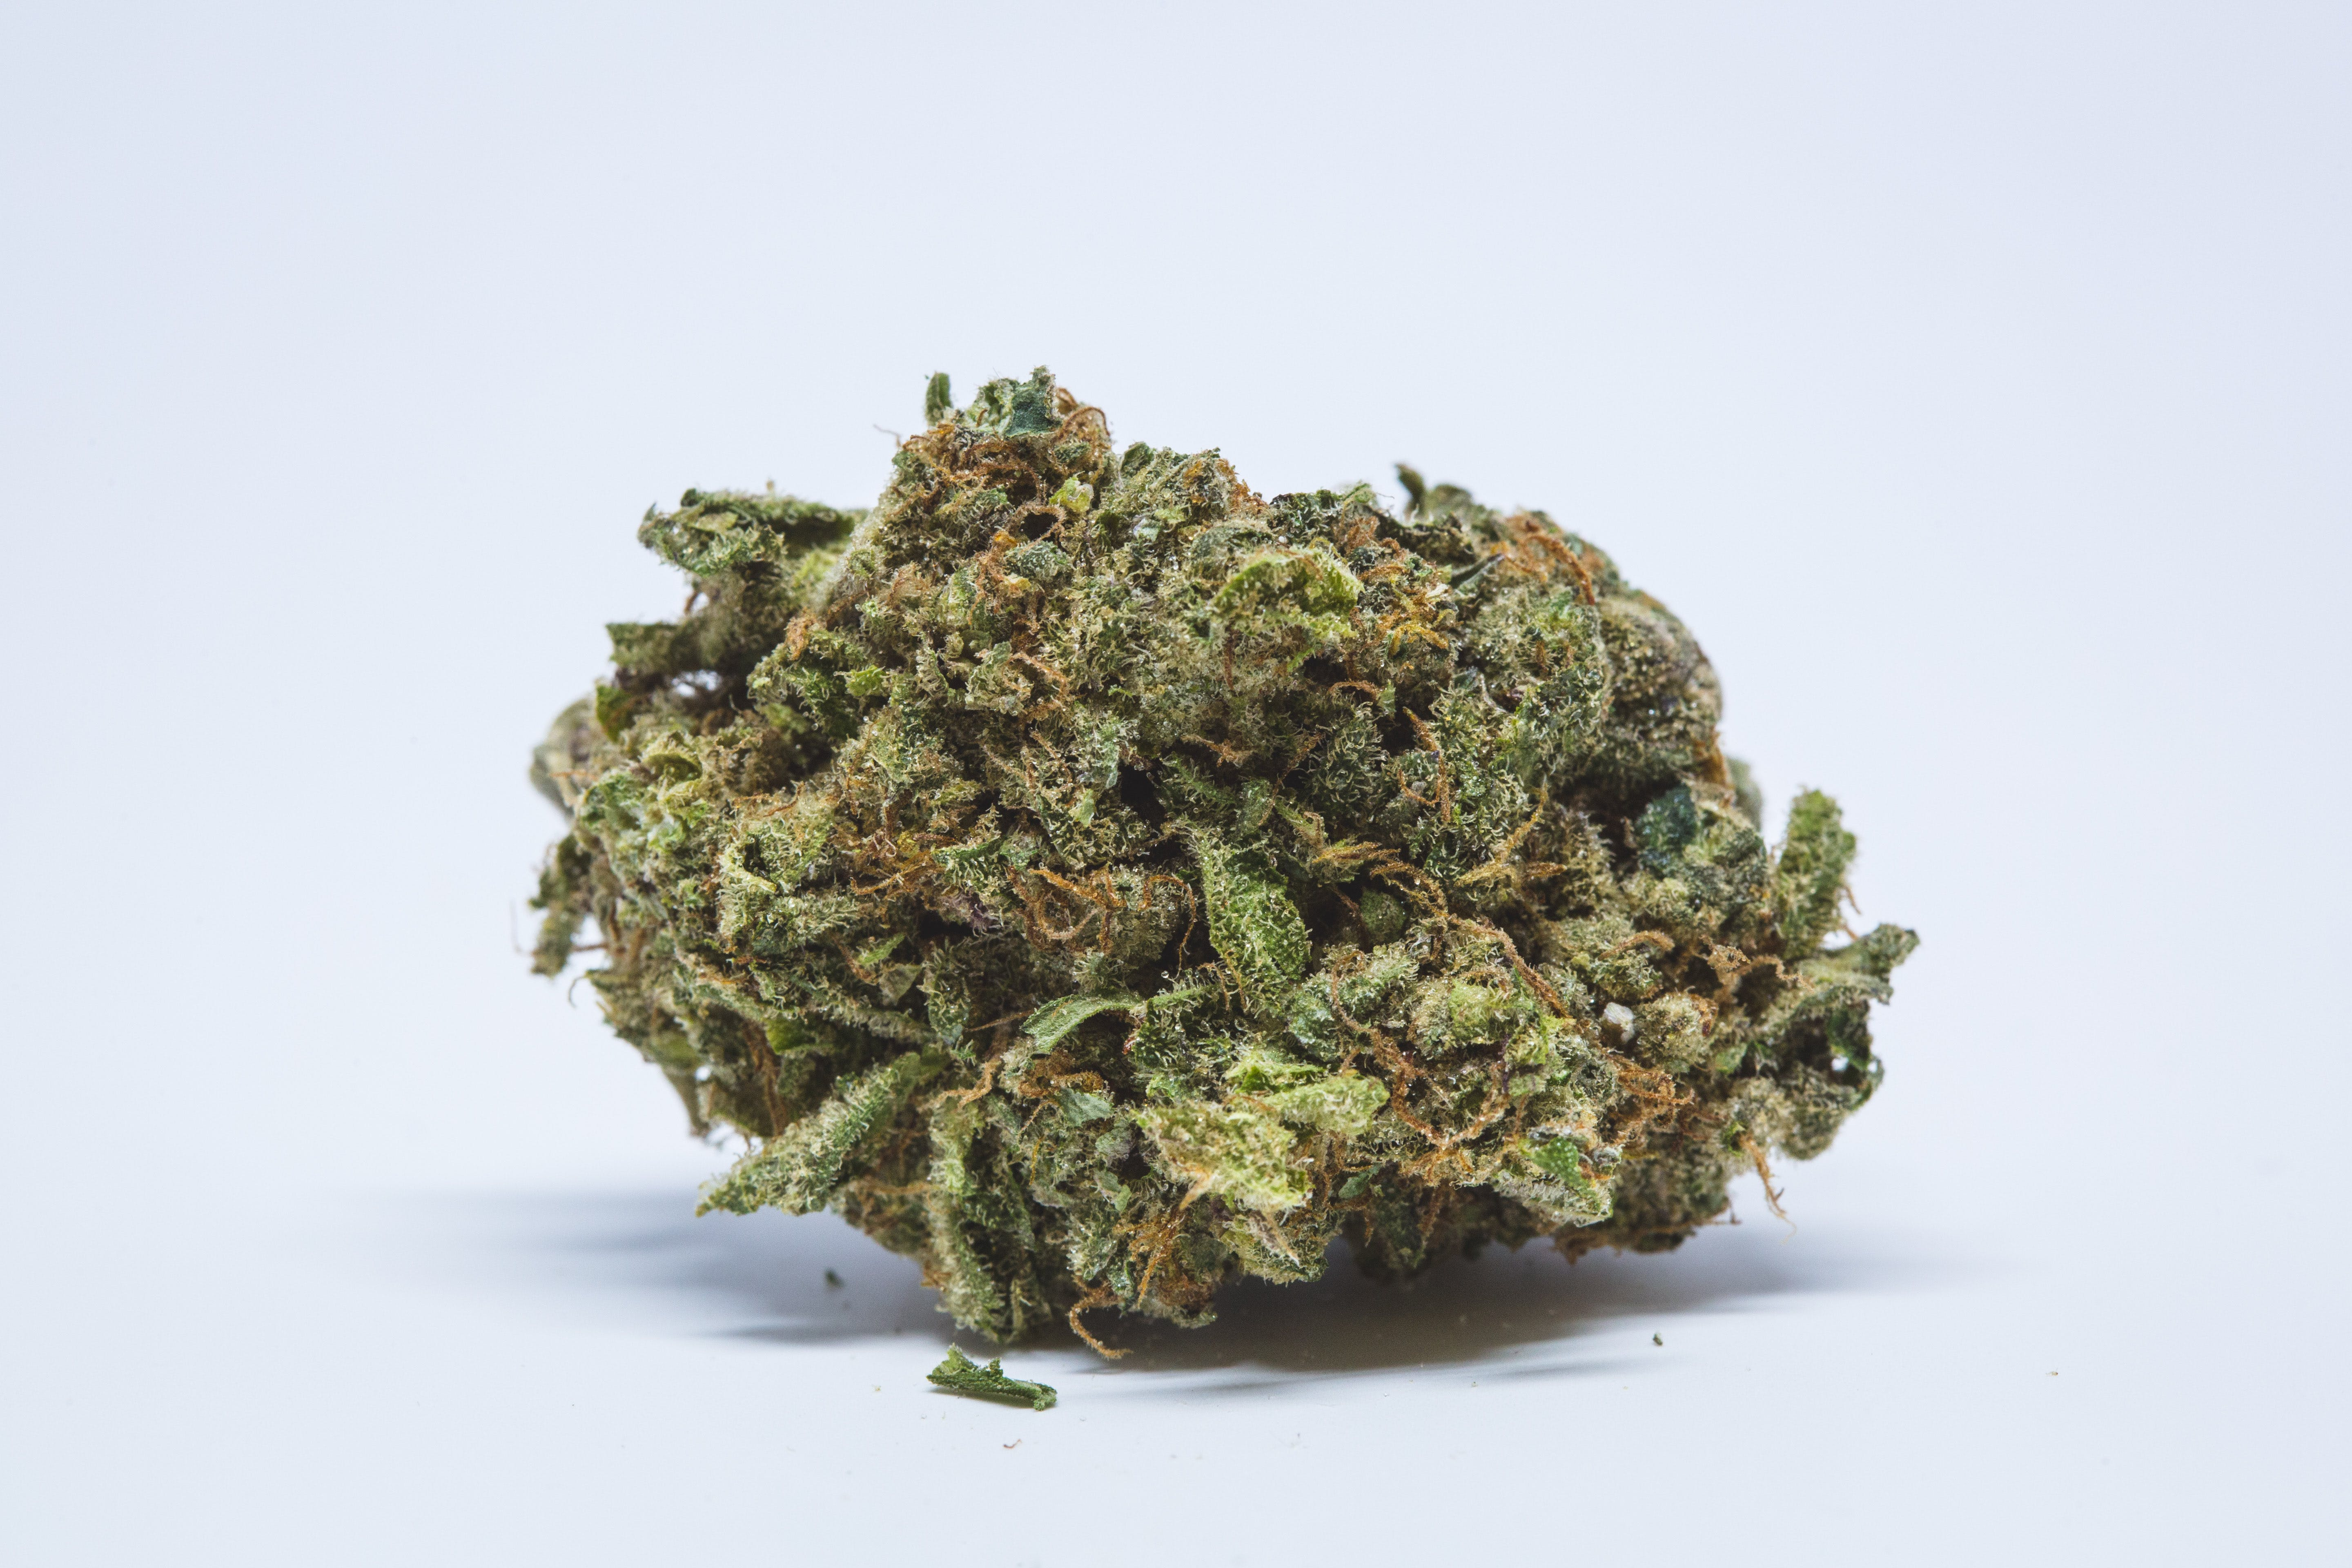 Blue Cookies Marijuana Strain 7 Ways To Smoke Weed In Your Apartment On The Sly